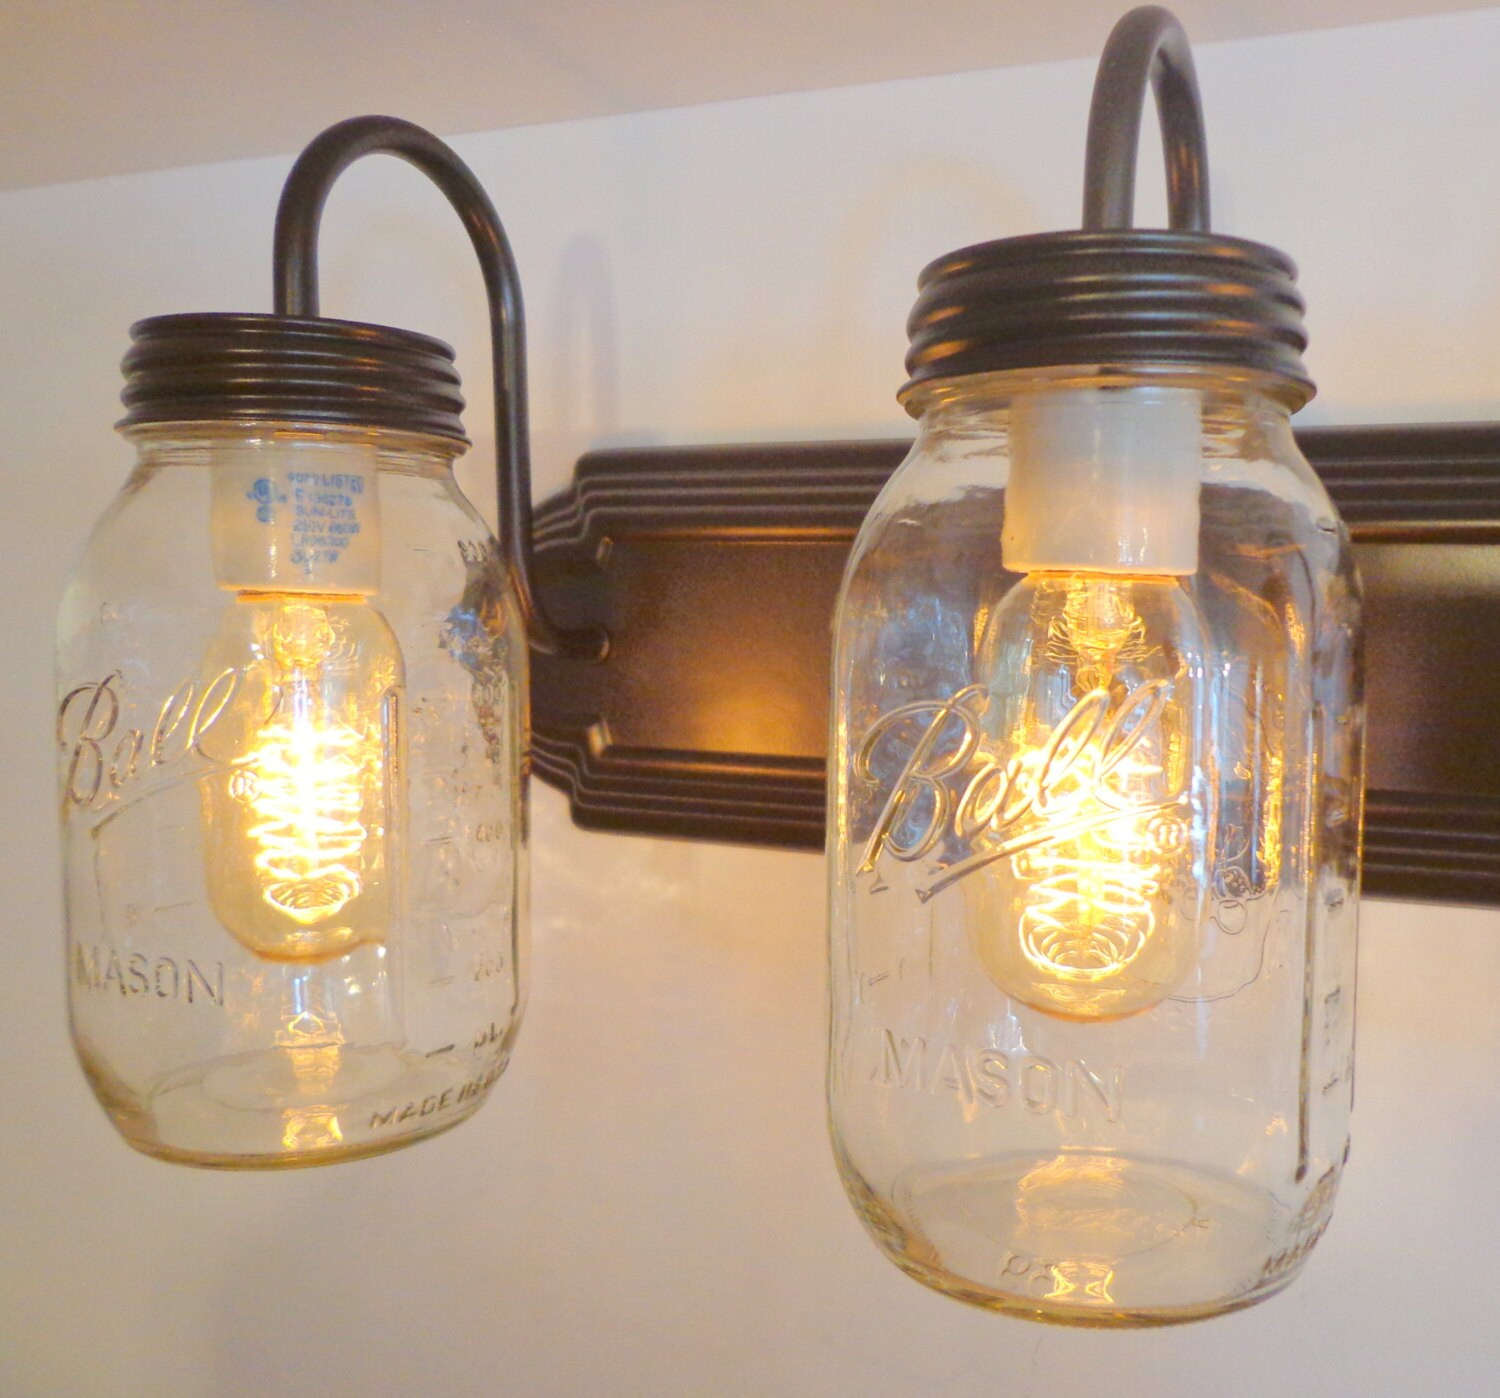 MASON JAR Wall Sconce NEW Quart Trio Light Vanity Flush